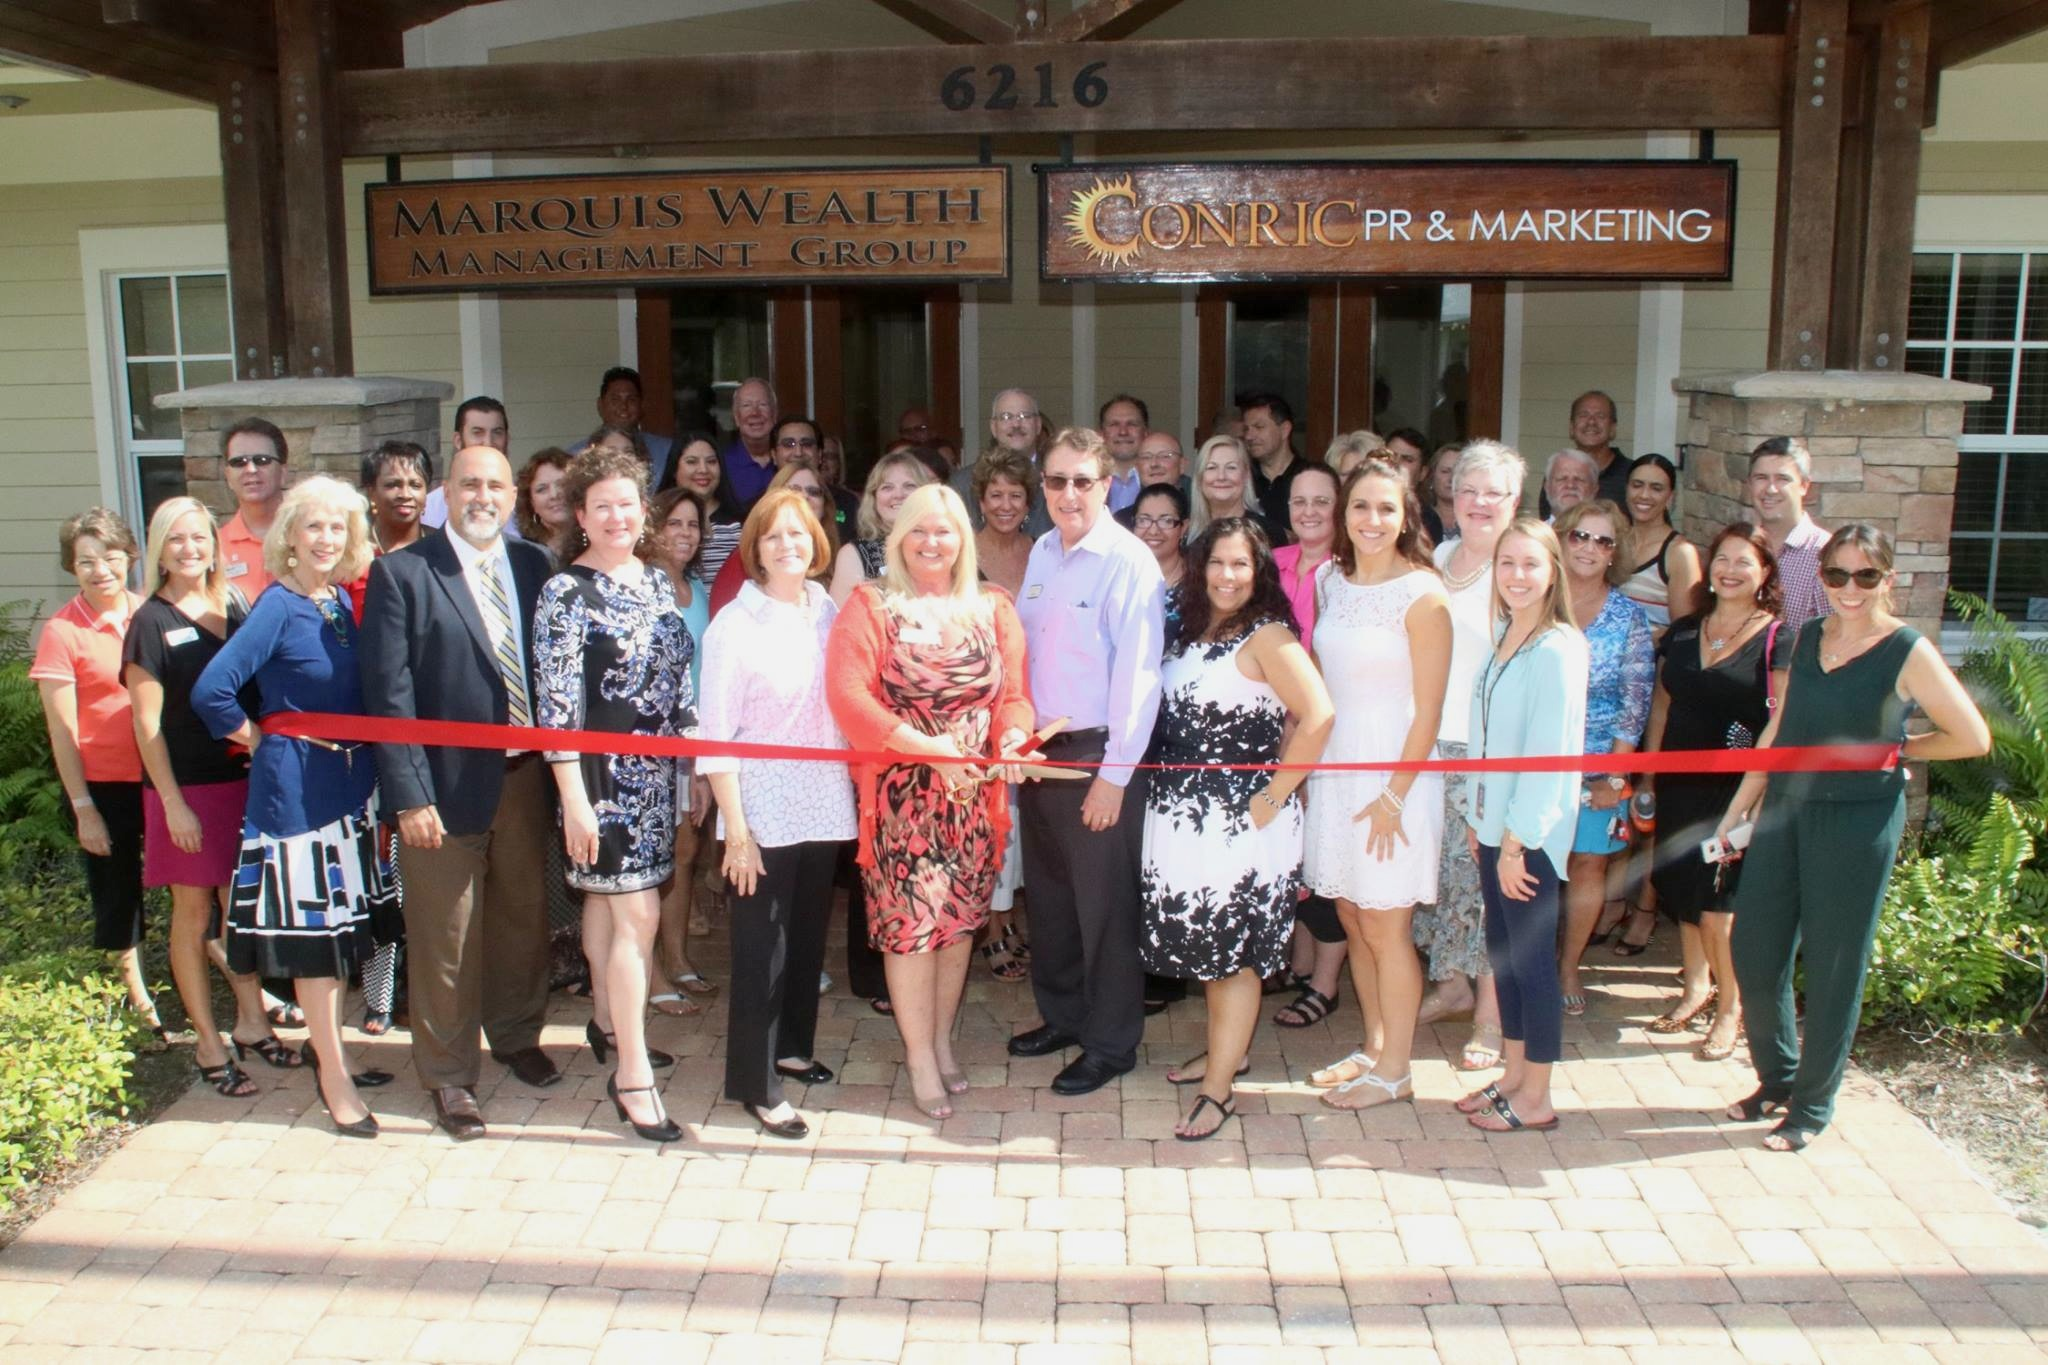 CONRIC PR & Marketing hosts open house in new, larger location